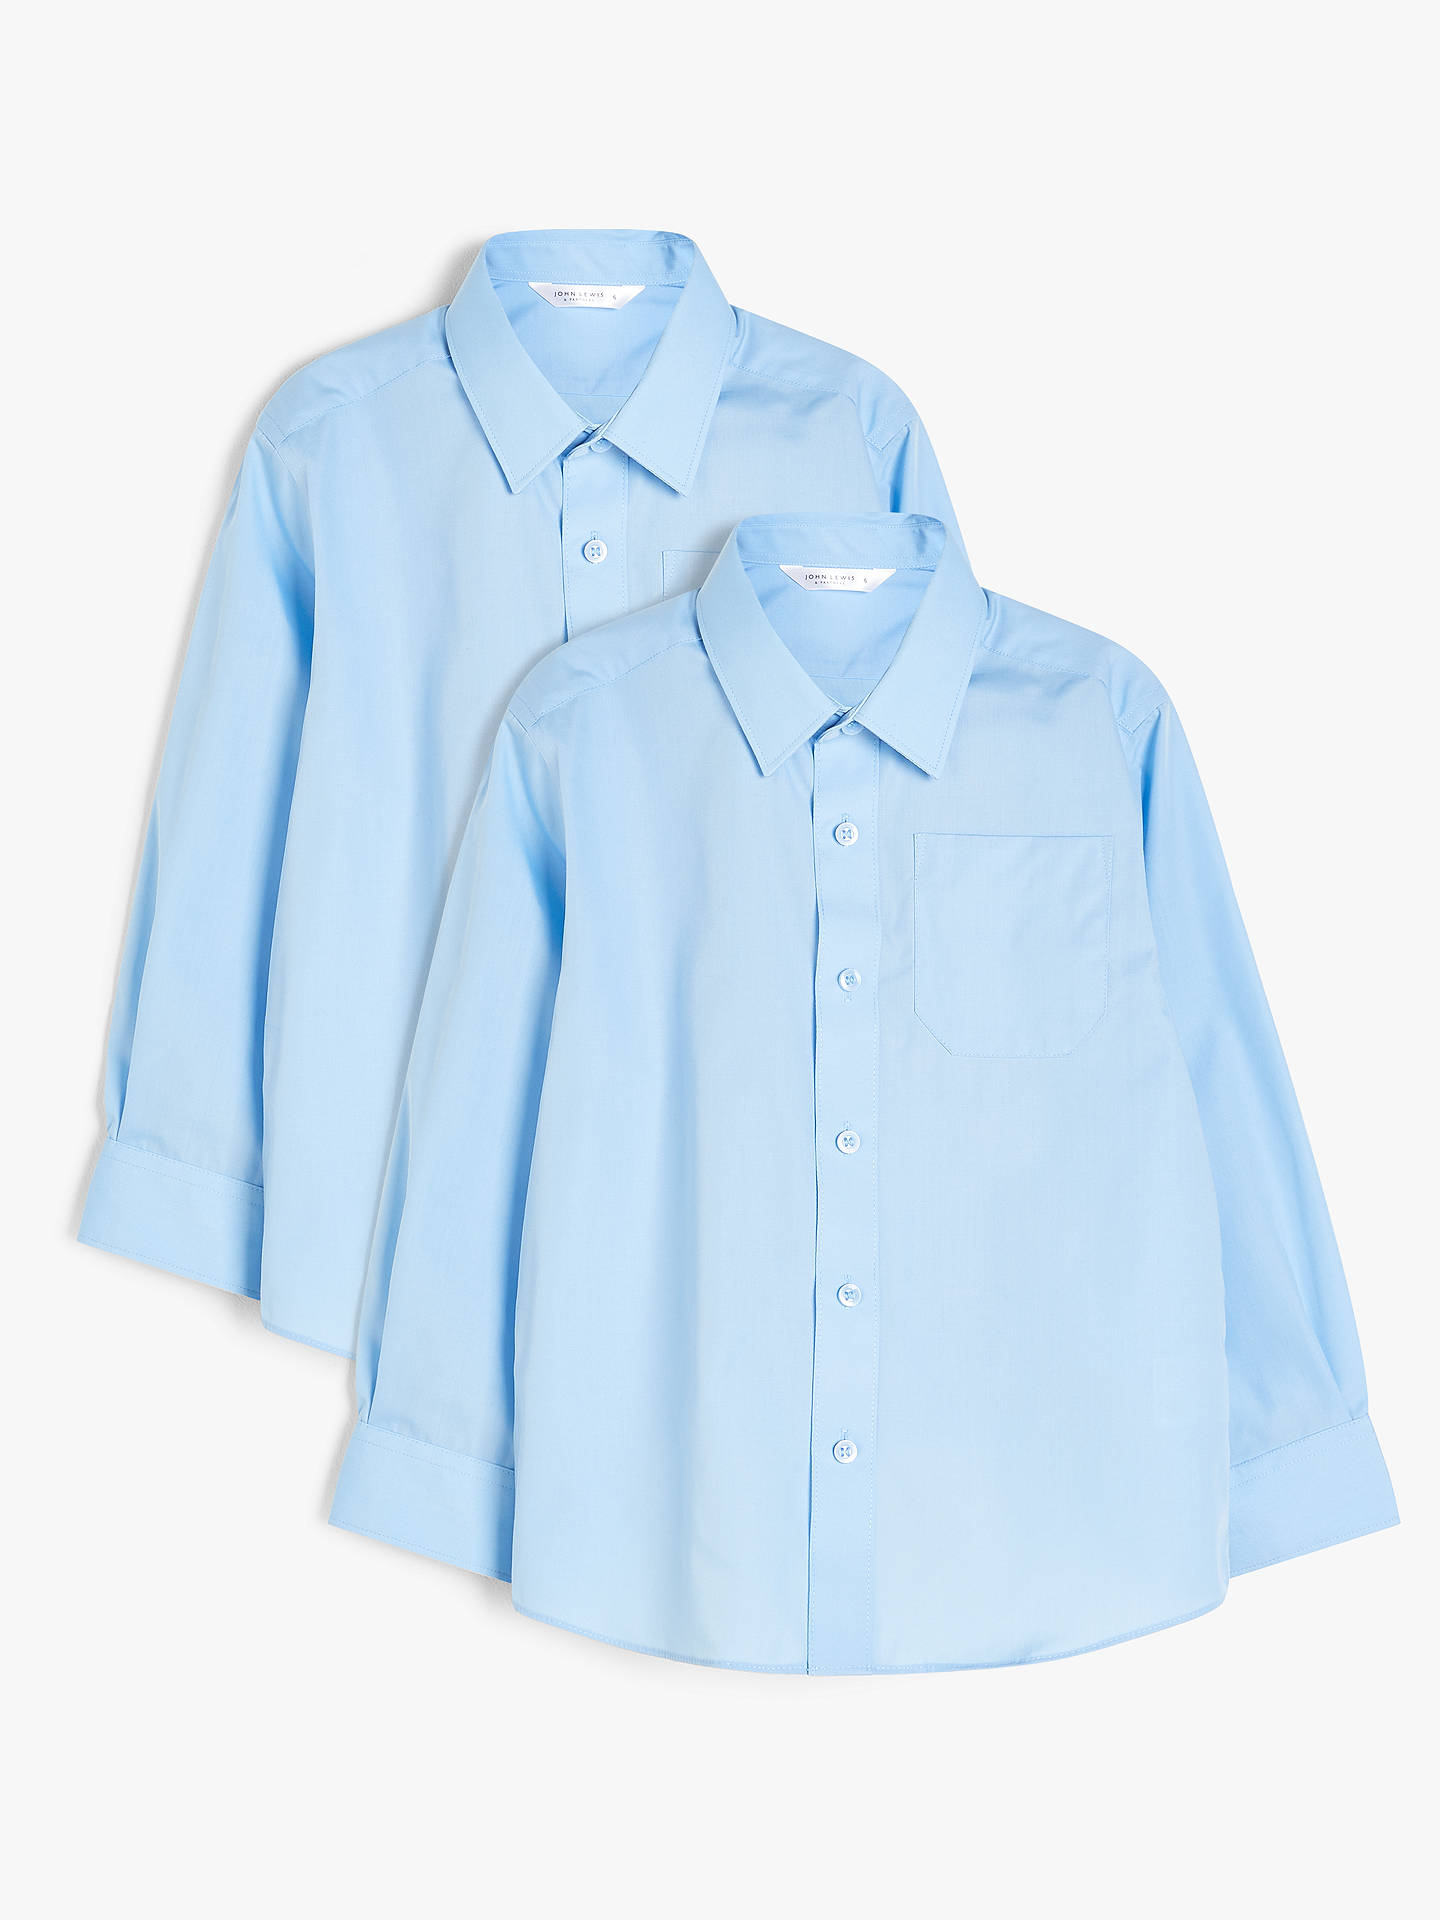 Buy John Lewis & Partners Boys' Non Iron Stain Resistant Long Sleeve School Shirt, Pack of 2, Blue, 3 years Online at johnlewis.com